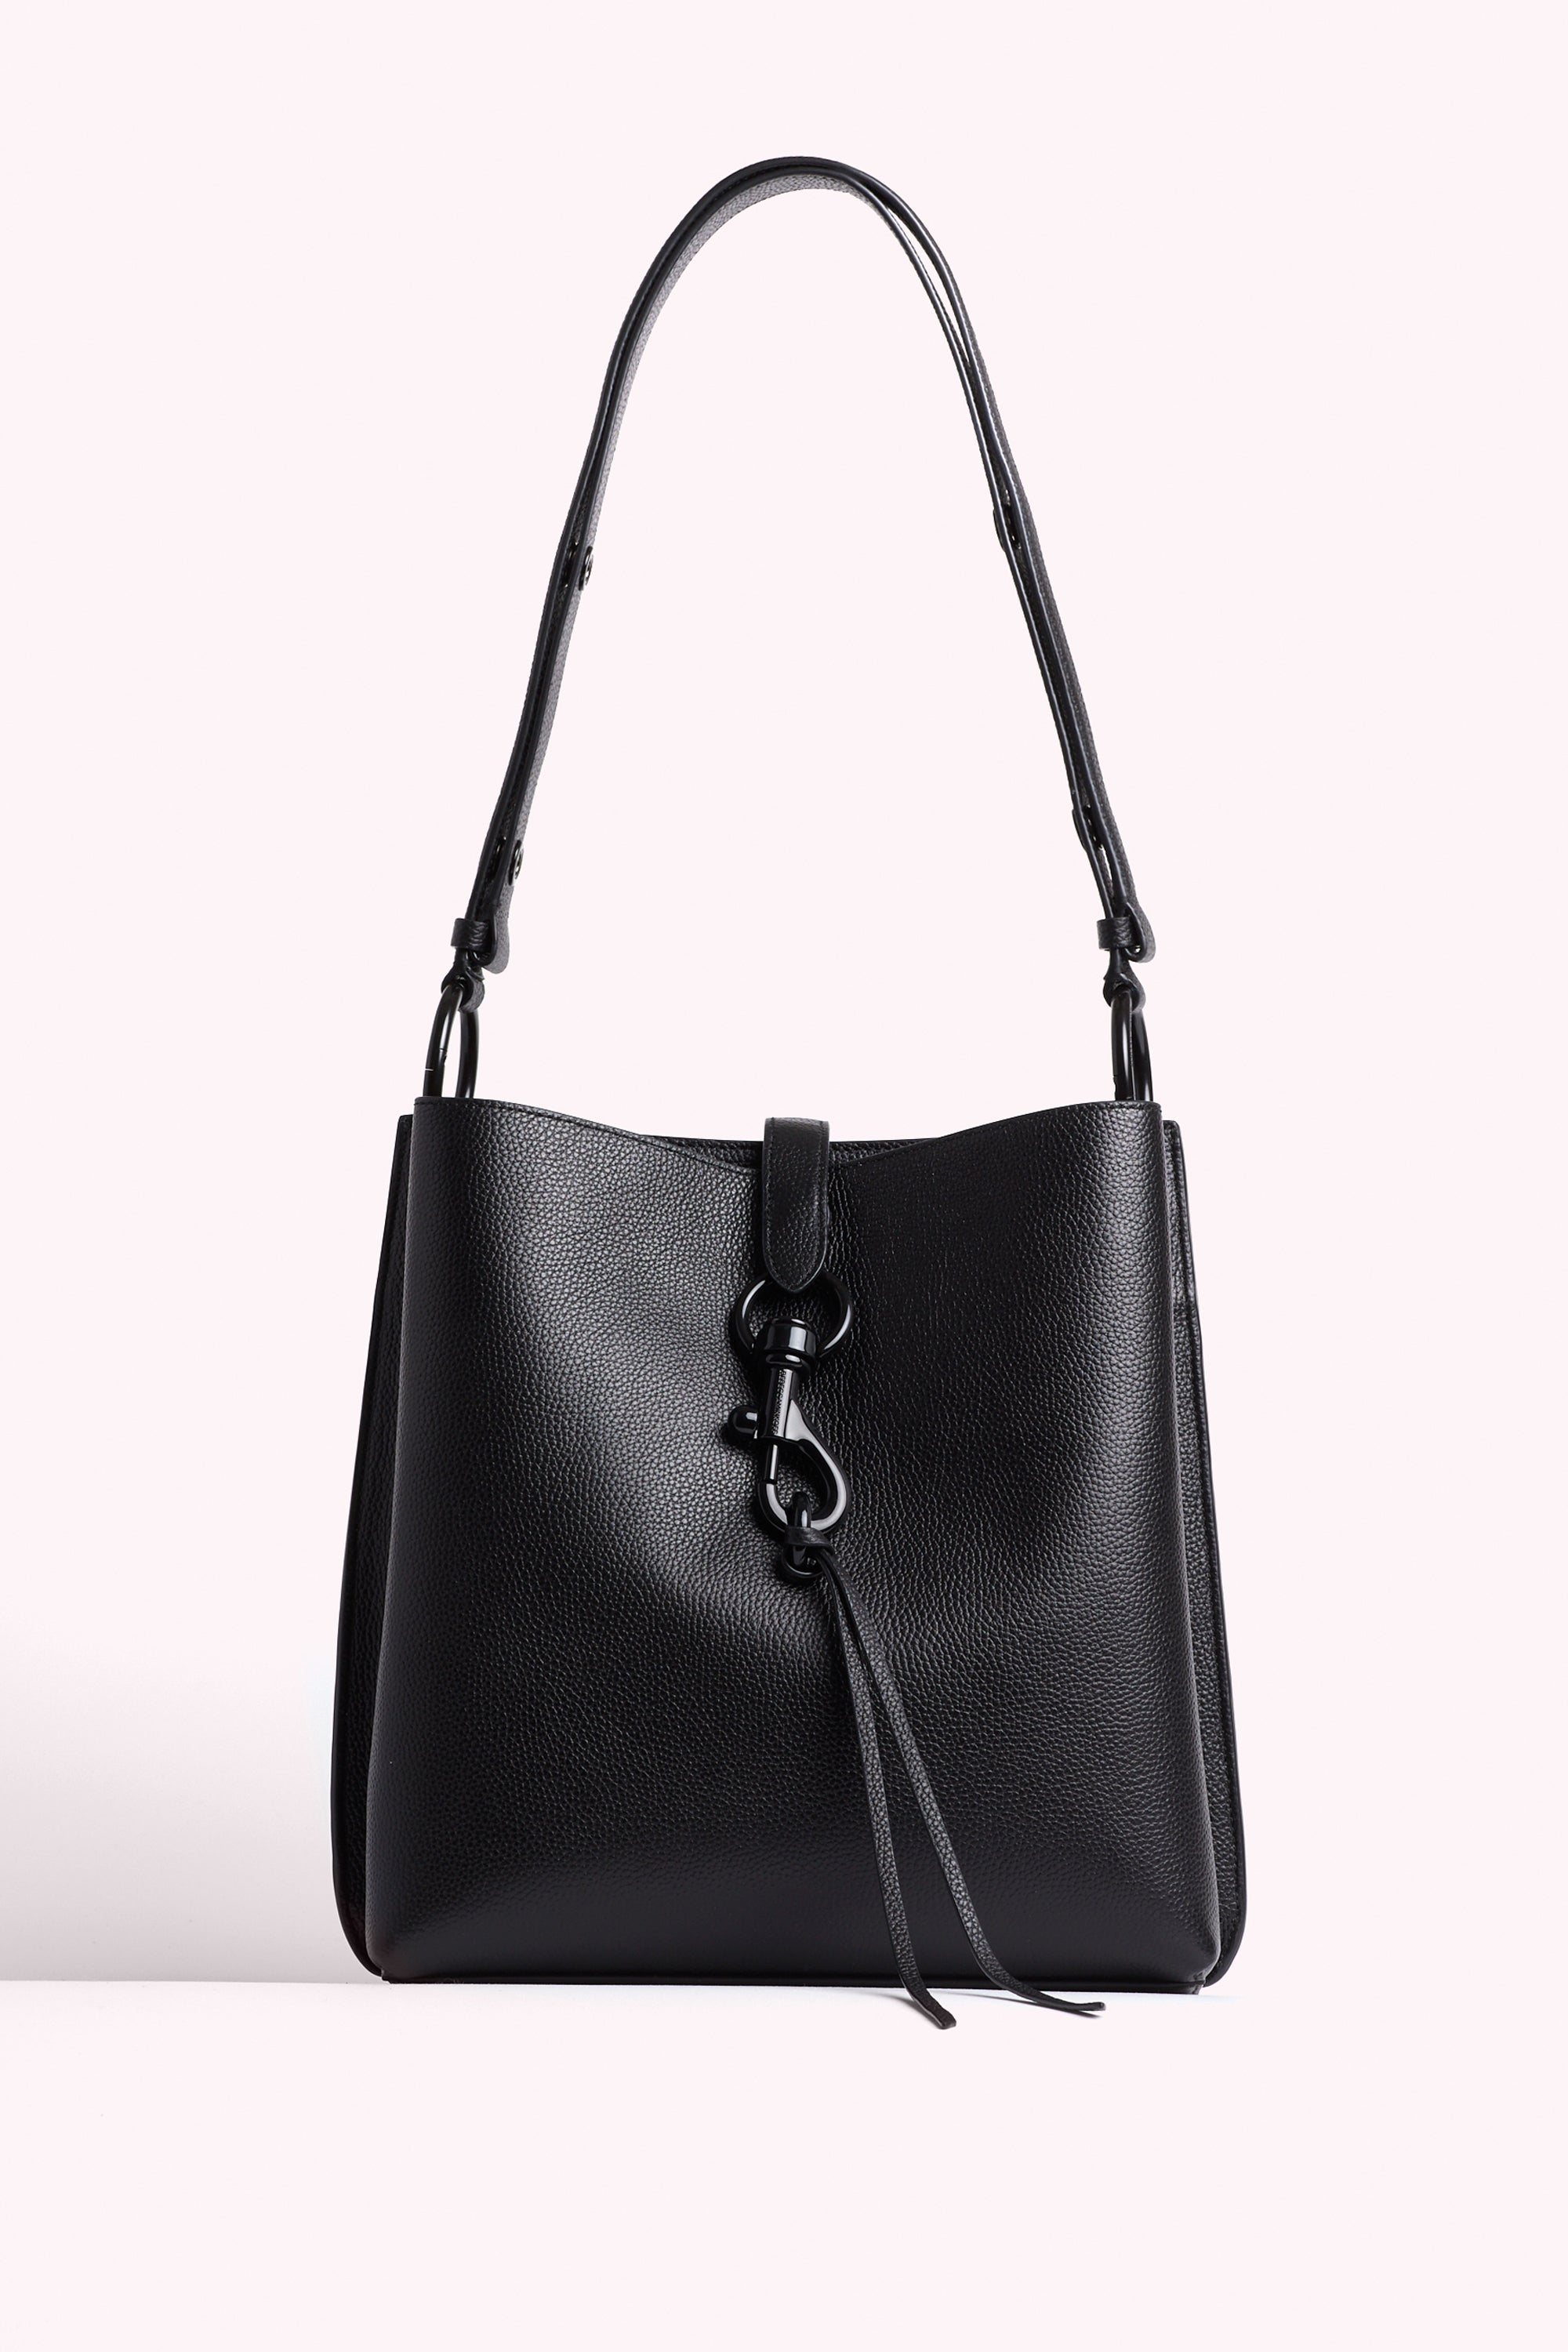 Rebecca-Minkoff Megan Shoulder Bag